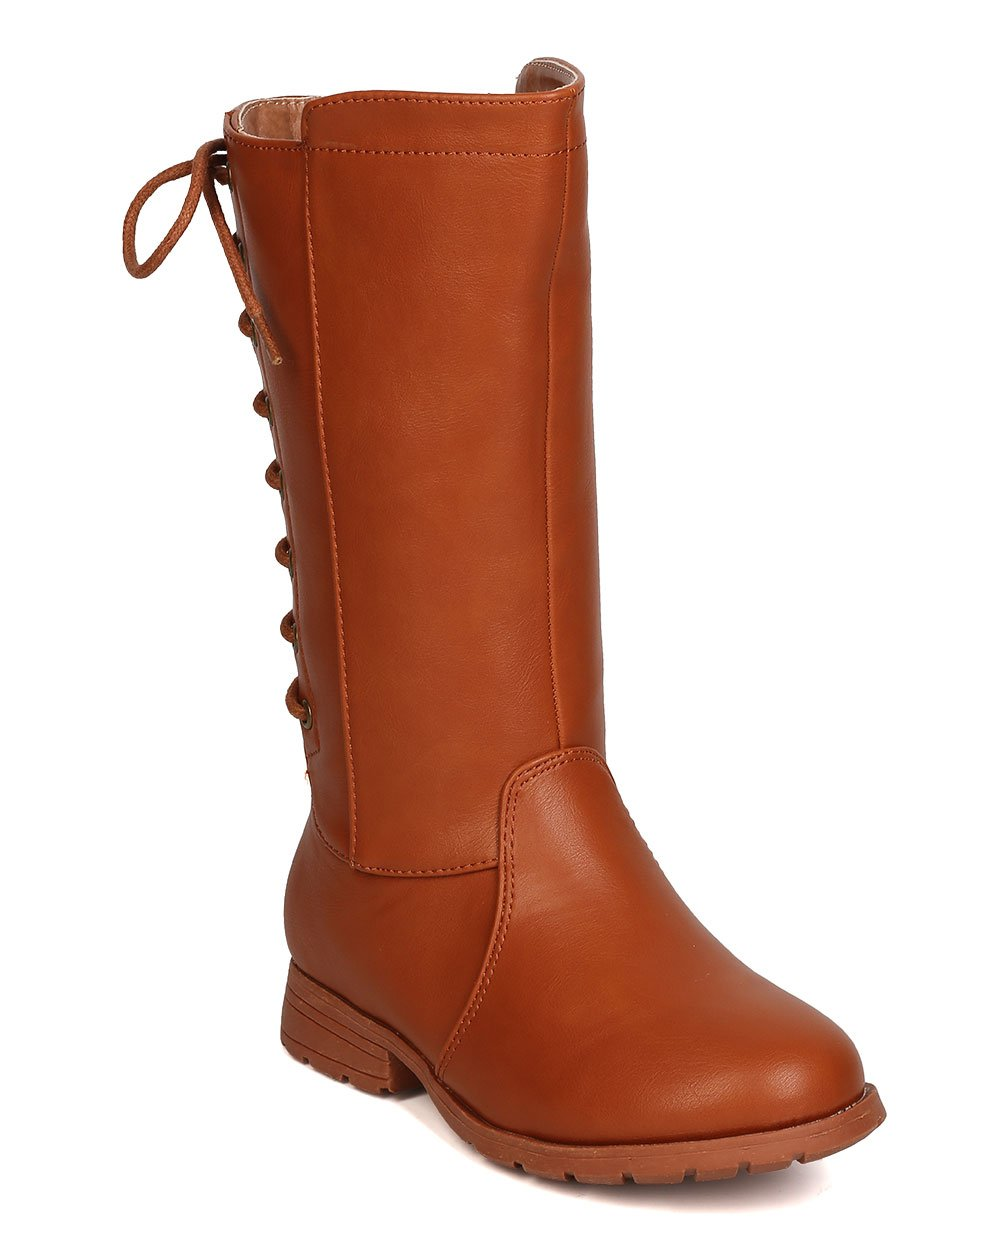 Girls Leatherette Back Lace Up Tall Riding Boot GB45 - Cognac (Size: Big Kid 3)